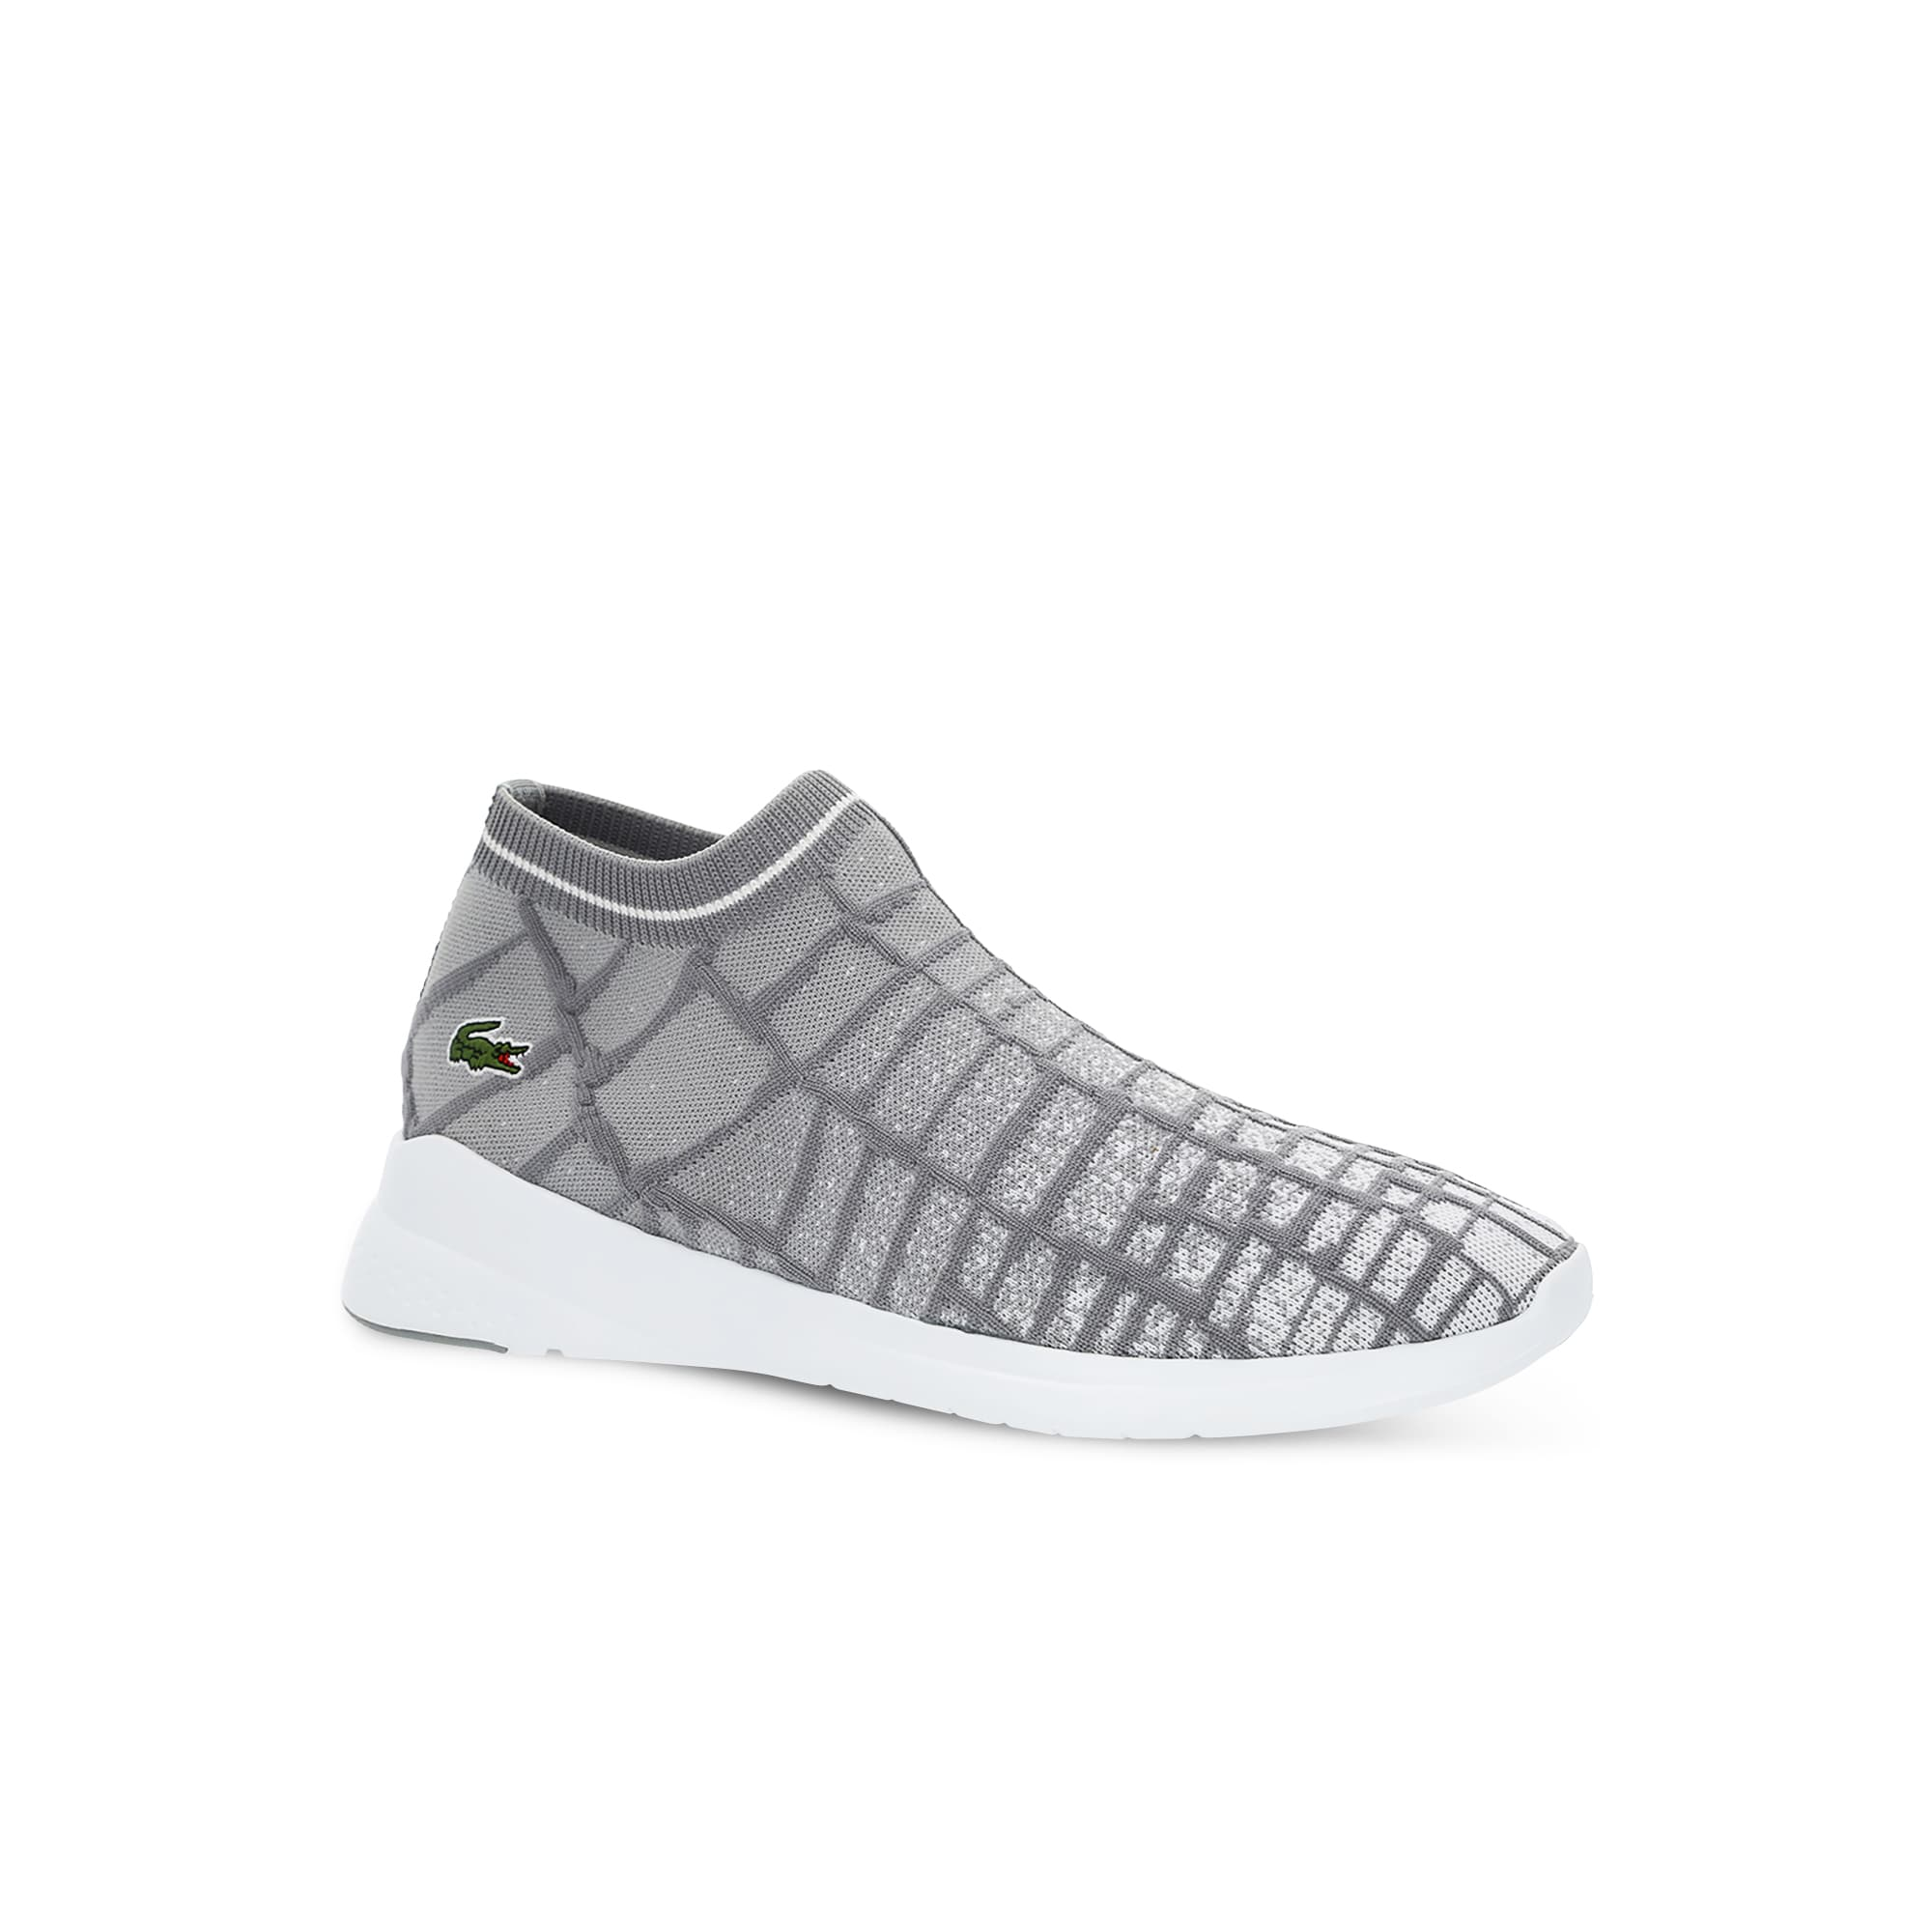 Men's LT Fit Sock Sneakers with Green Croc